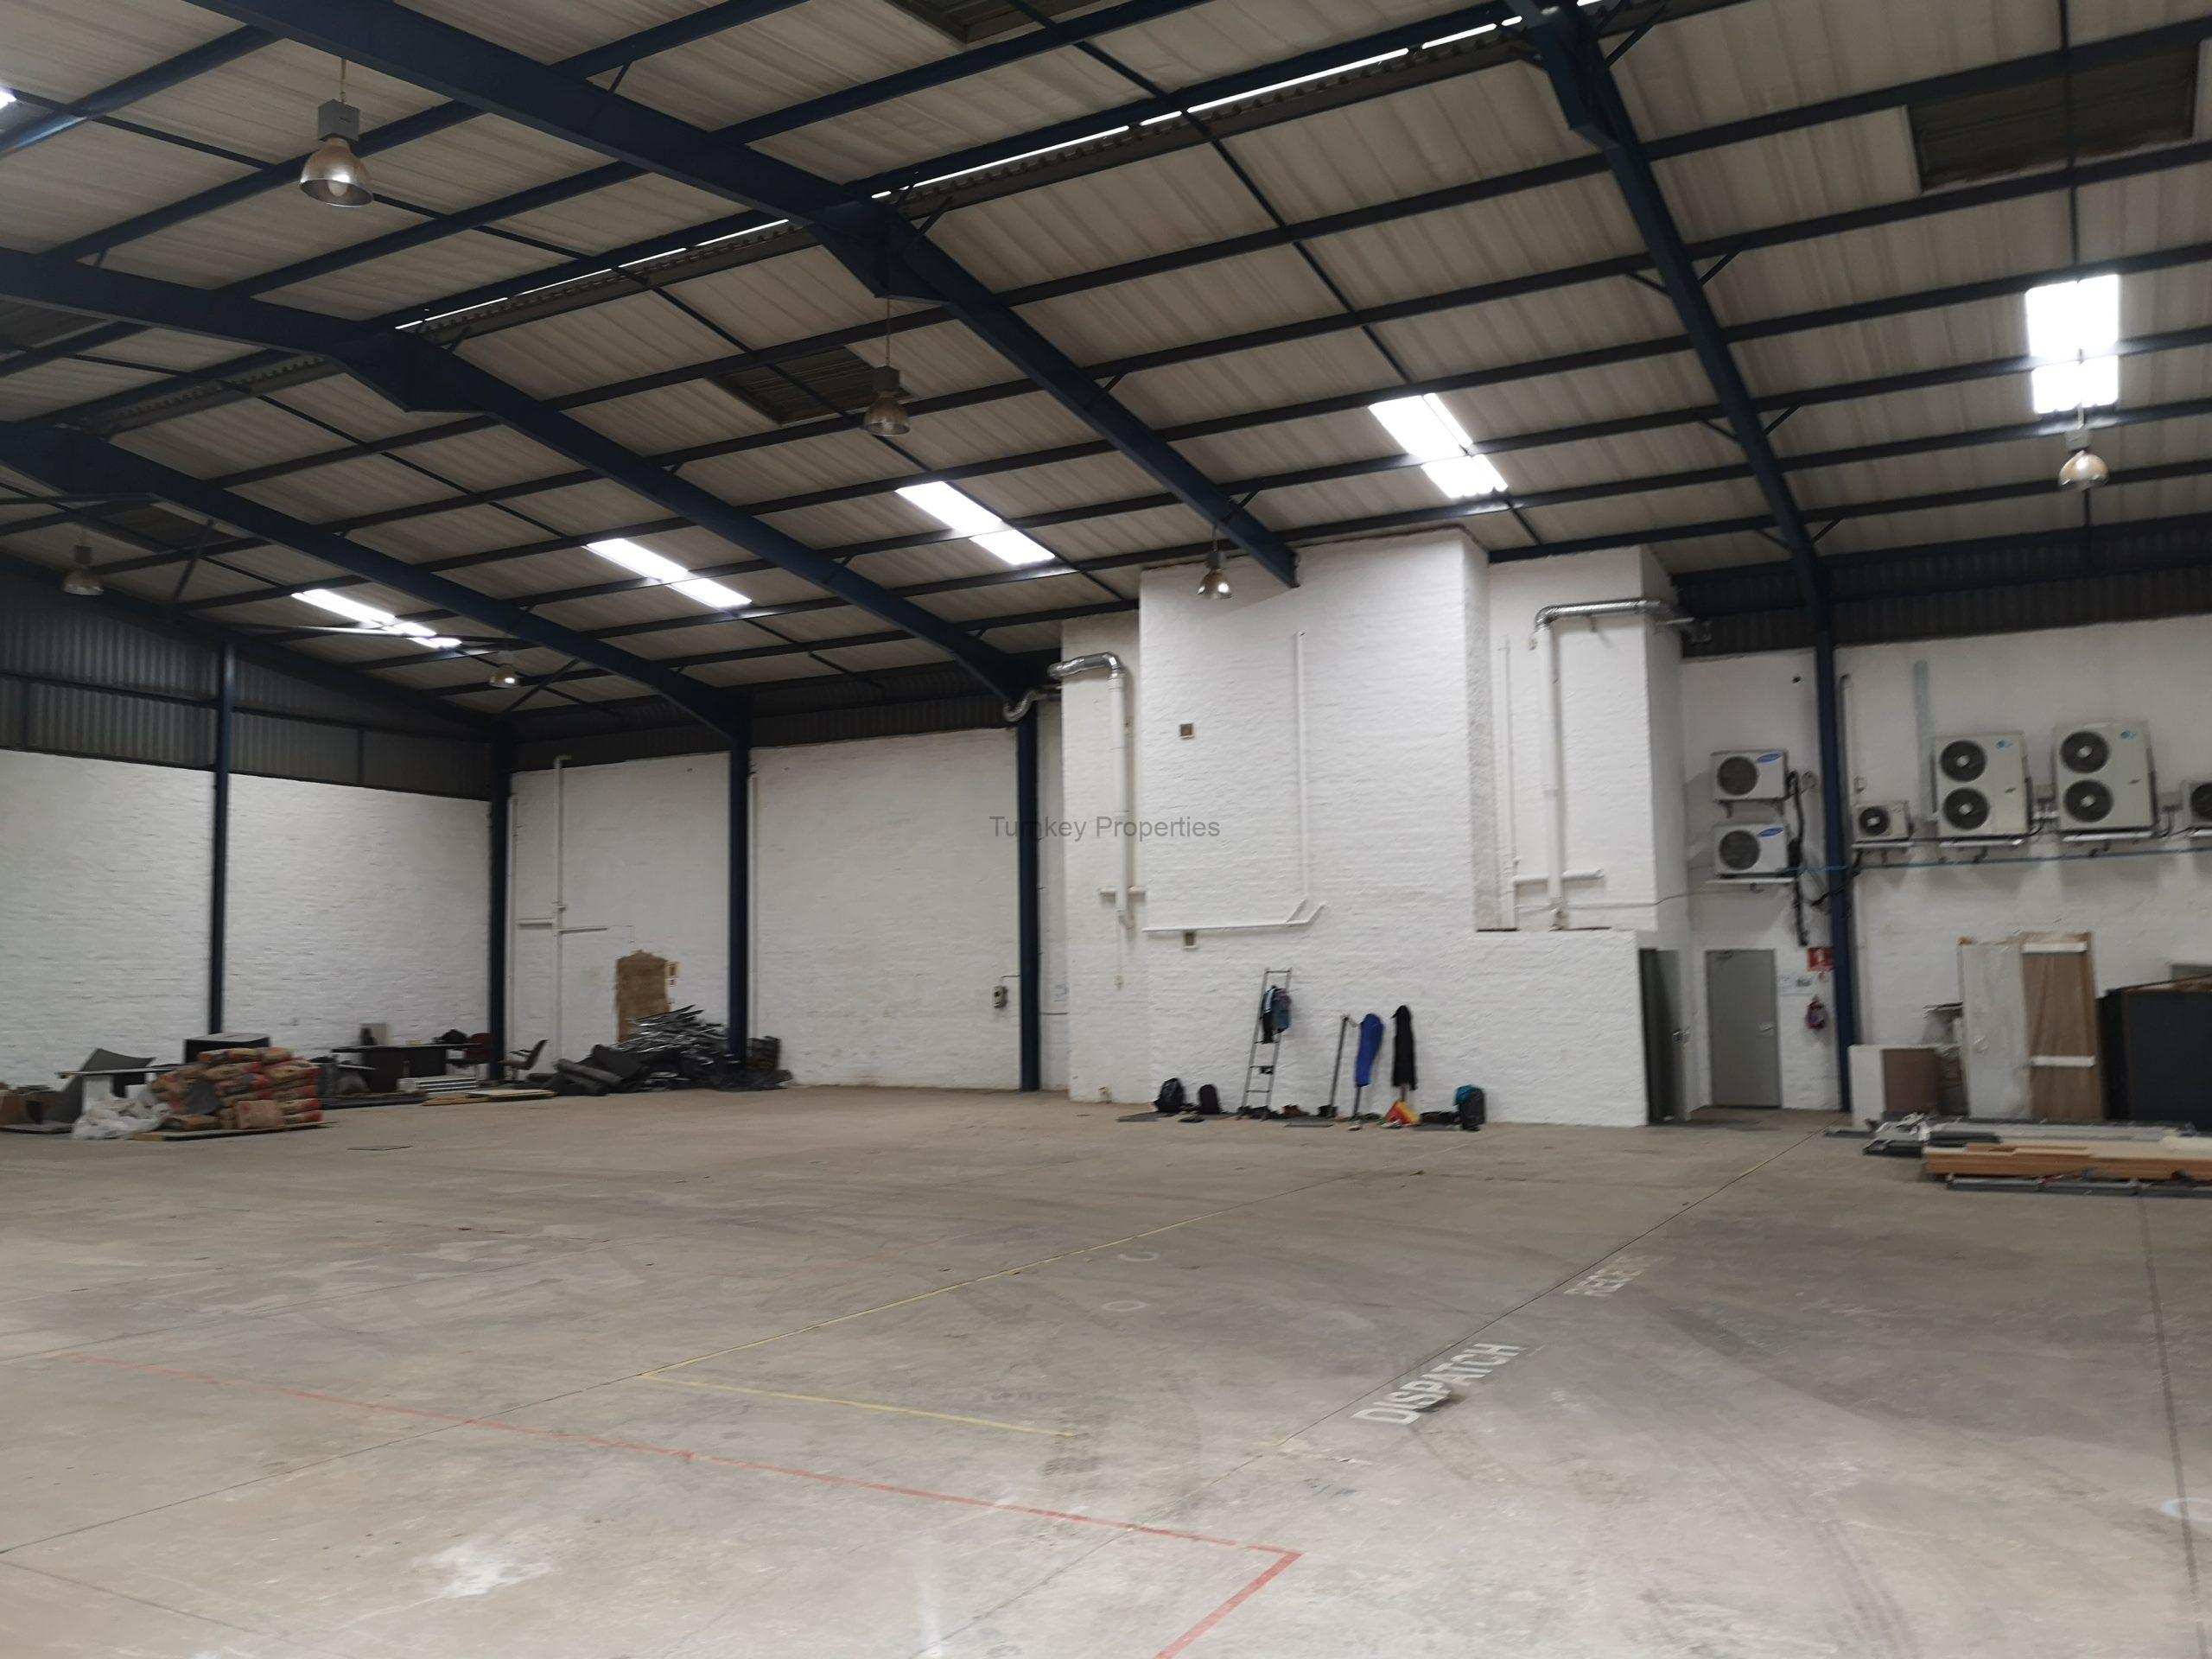 1364 m² Warehouse space to Rent Midrand Kyalami Business Park